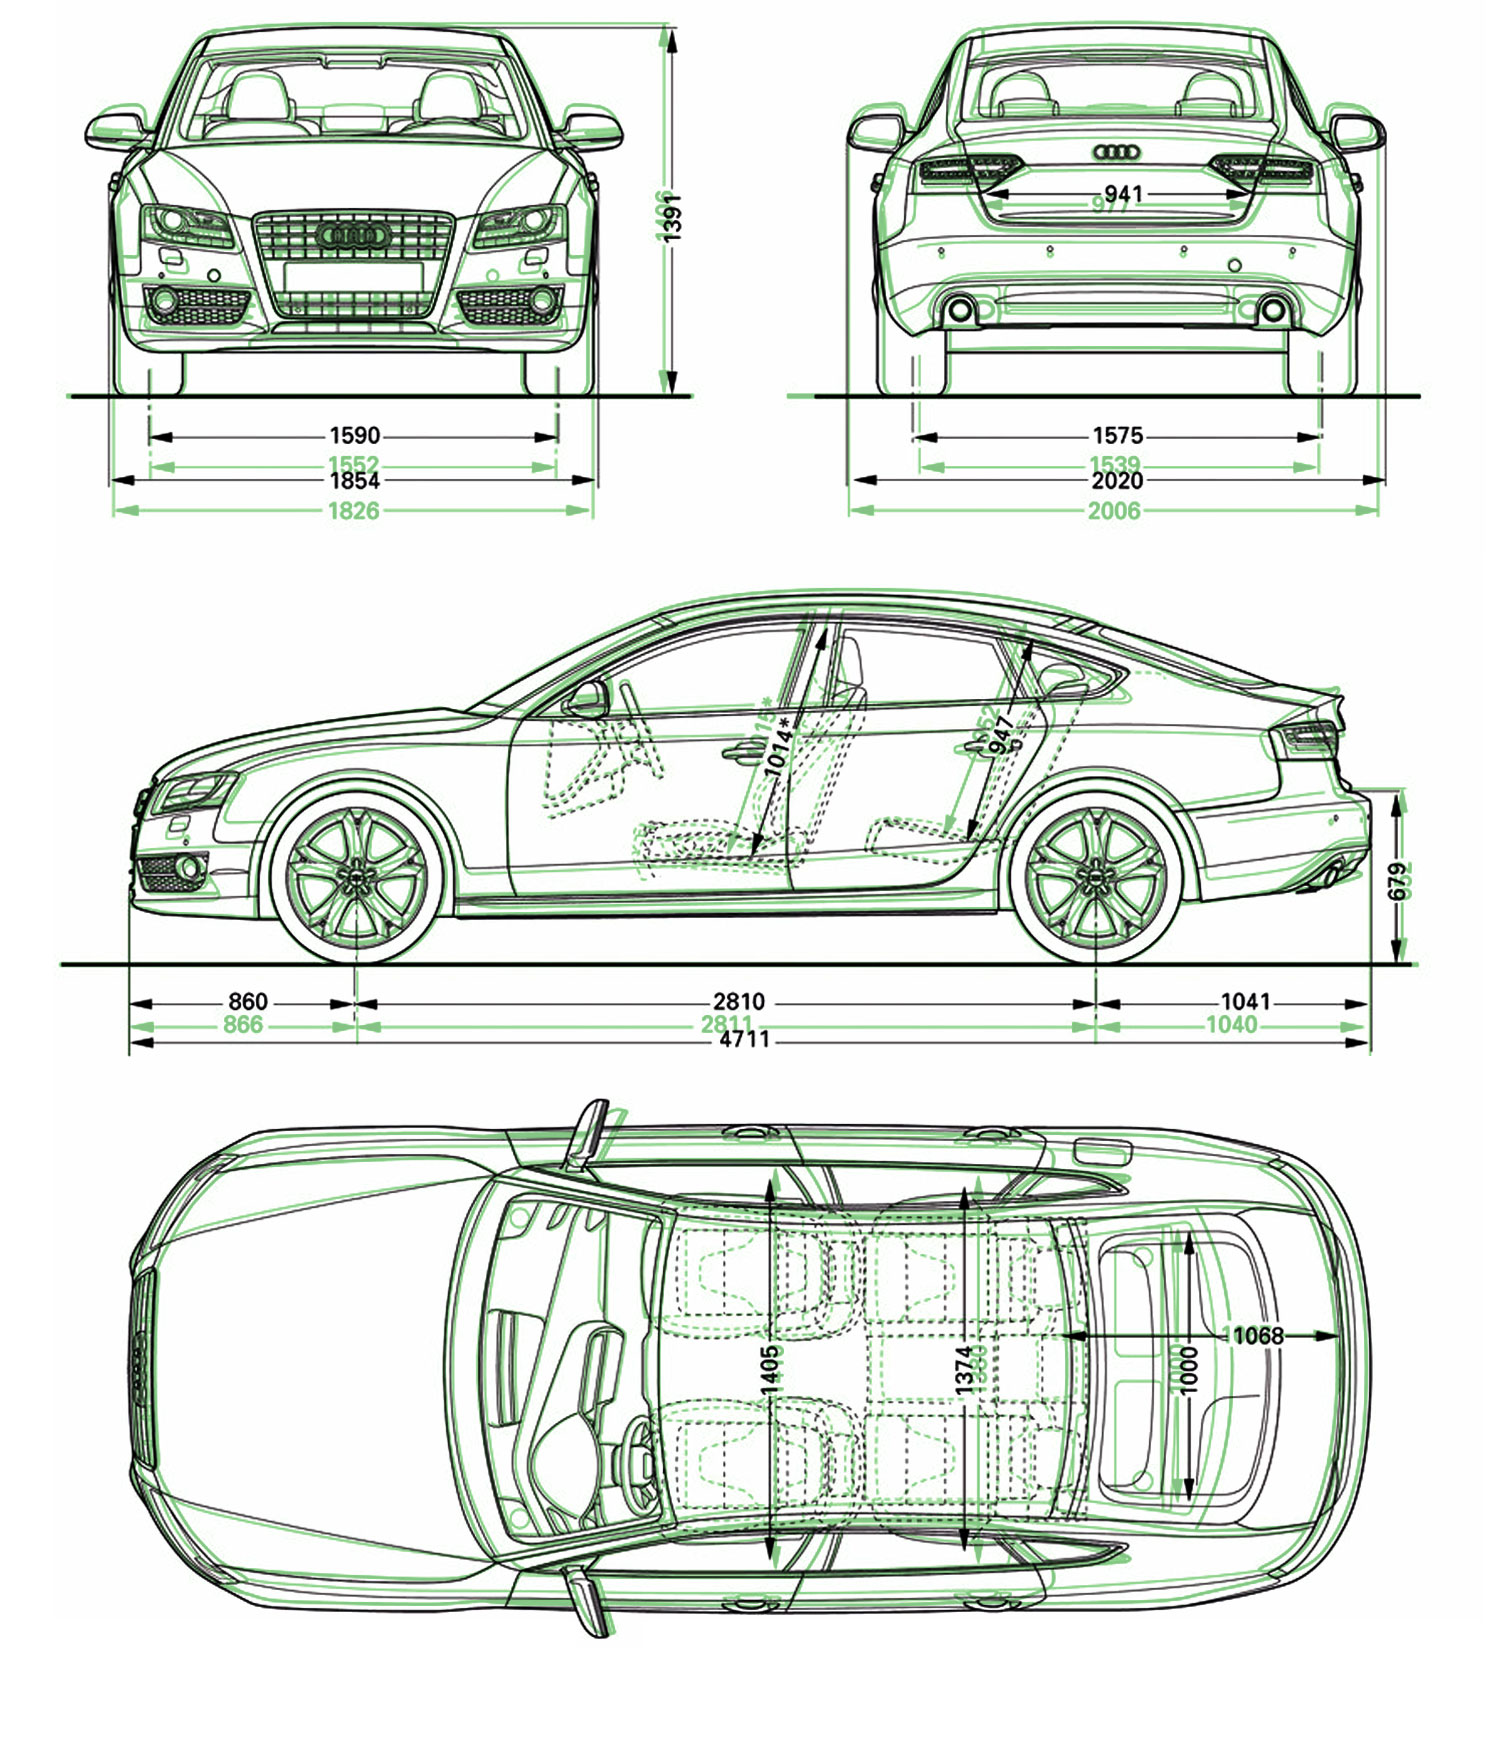 Car Orthographic View along with cars orthographic projection drawings